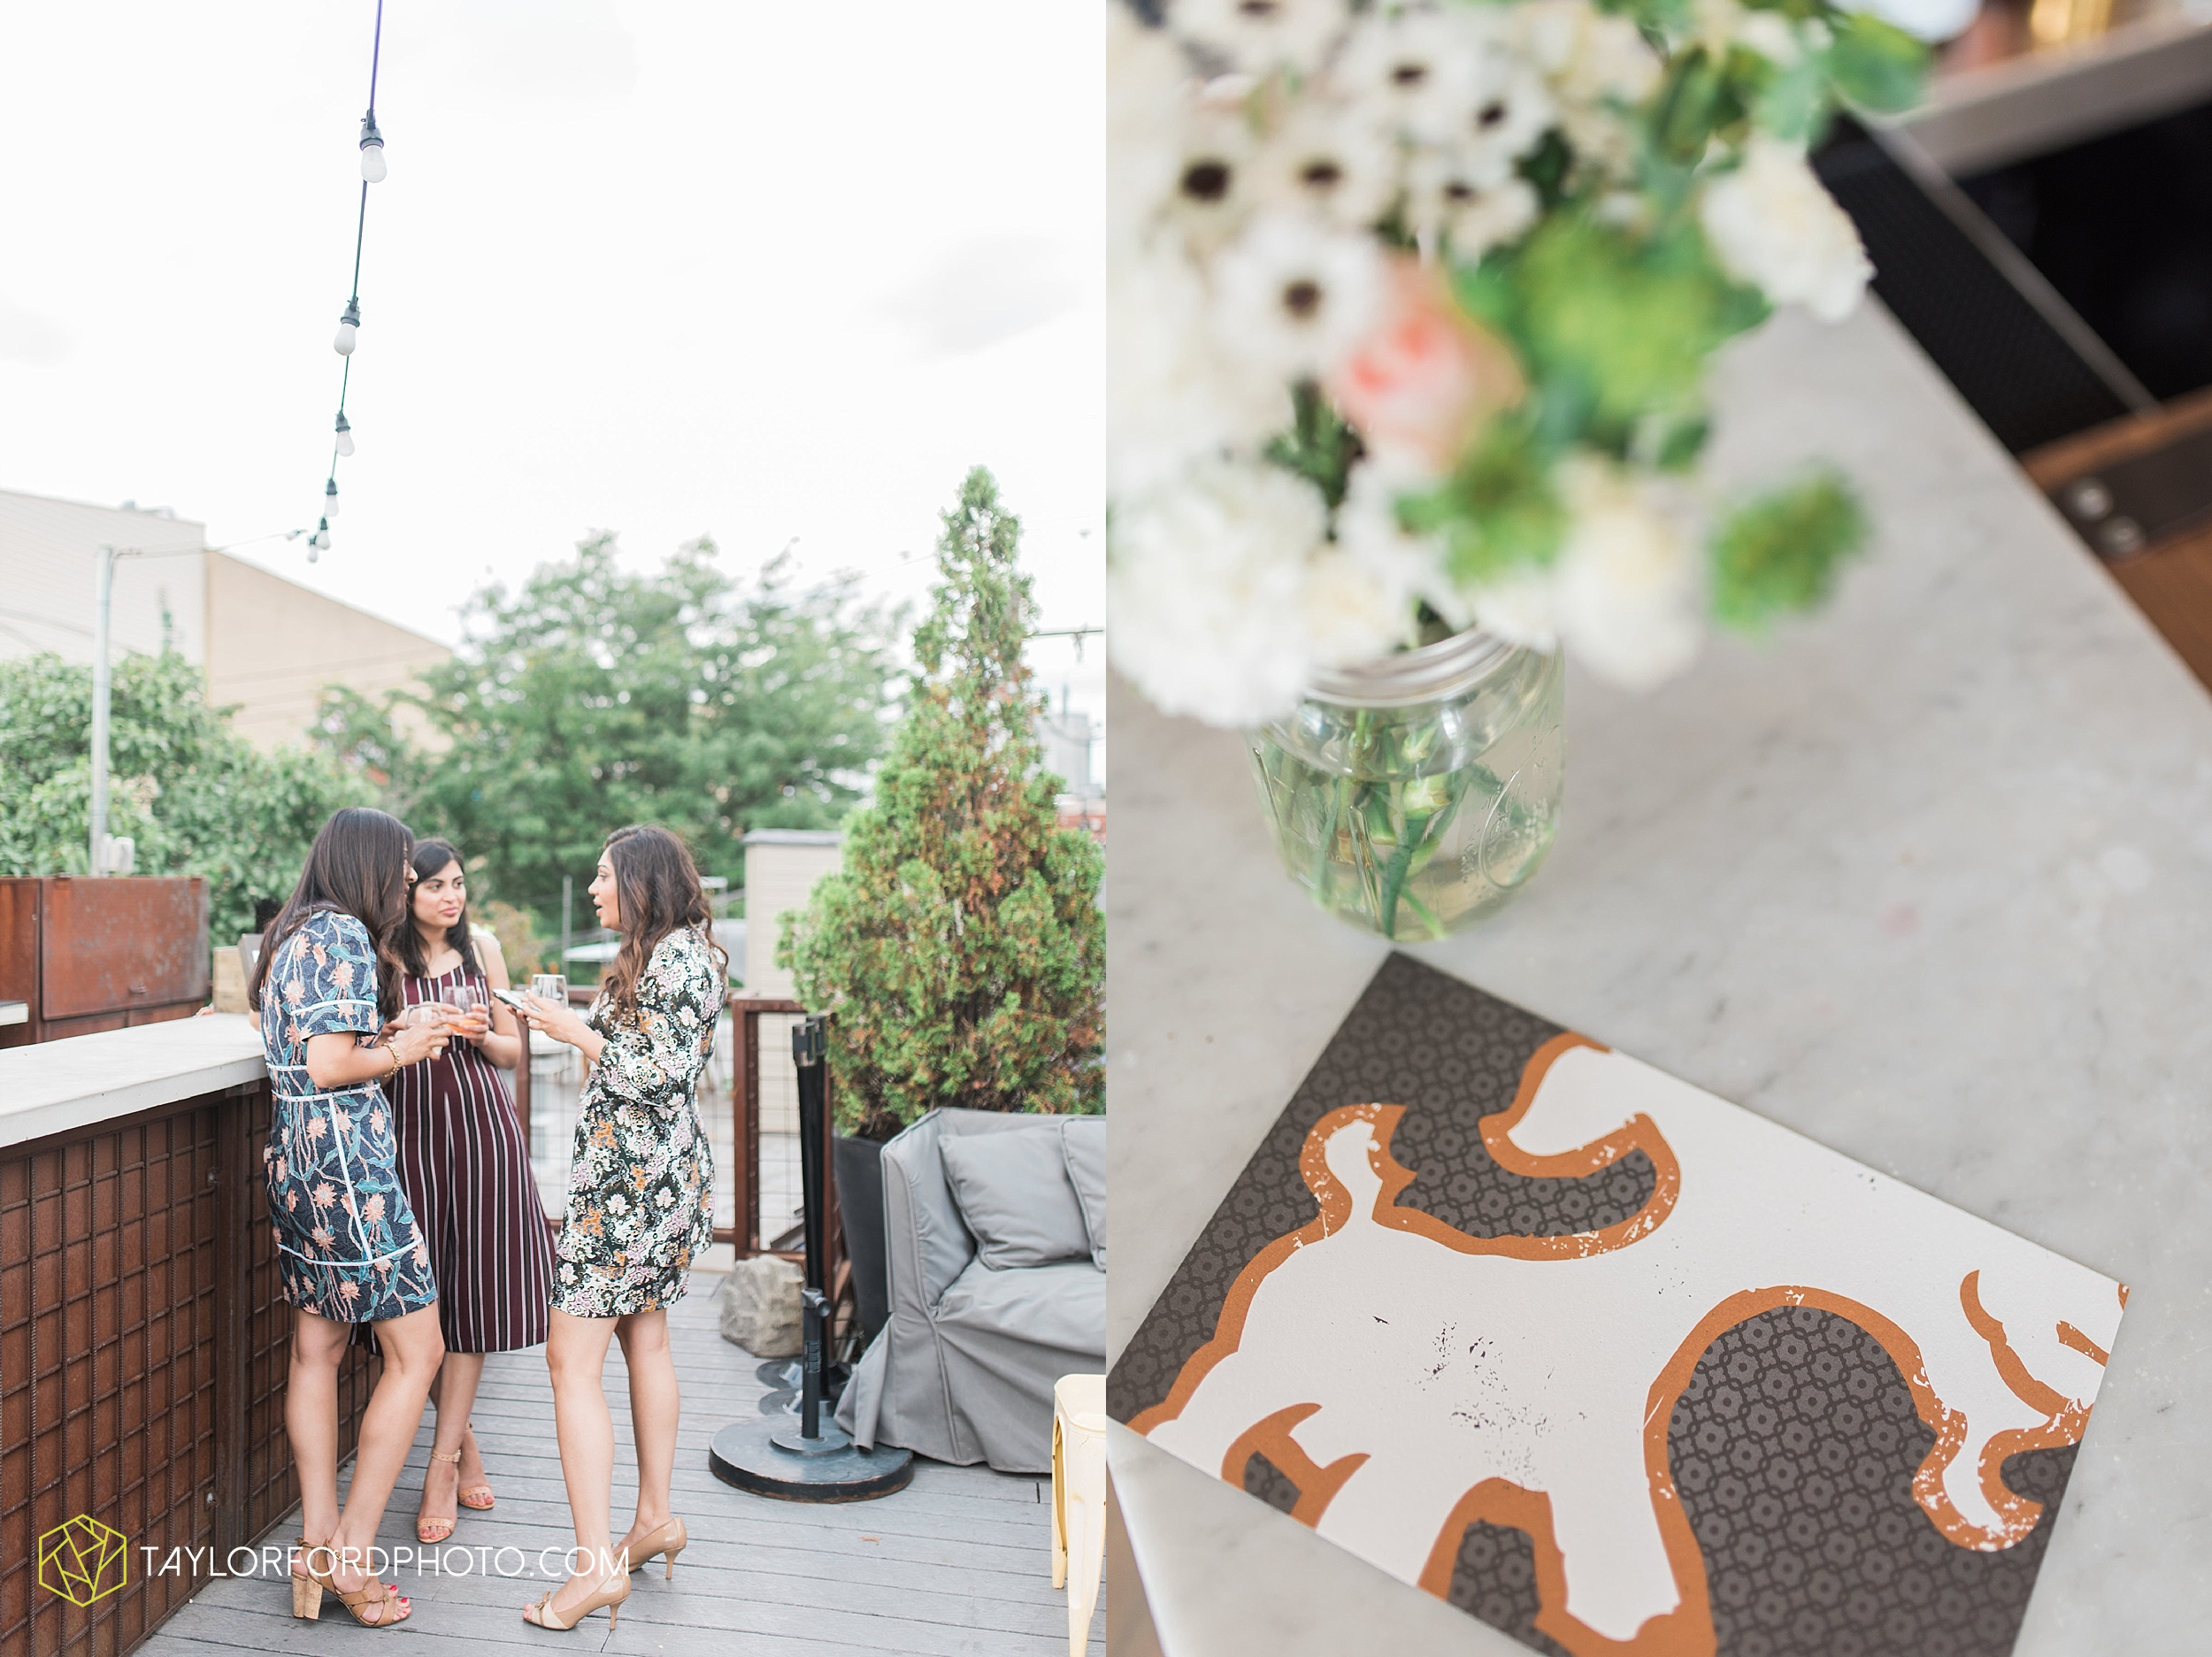 chicago-illinois-bridal-shower-wedding-engagement-photographer-Taylor-Ford-Photography-the-little-goat-diner-rooftop-indian-ceremony_5086.jpg